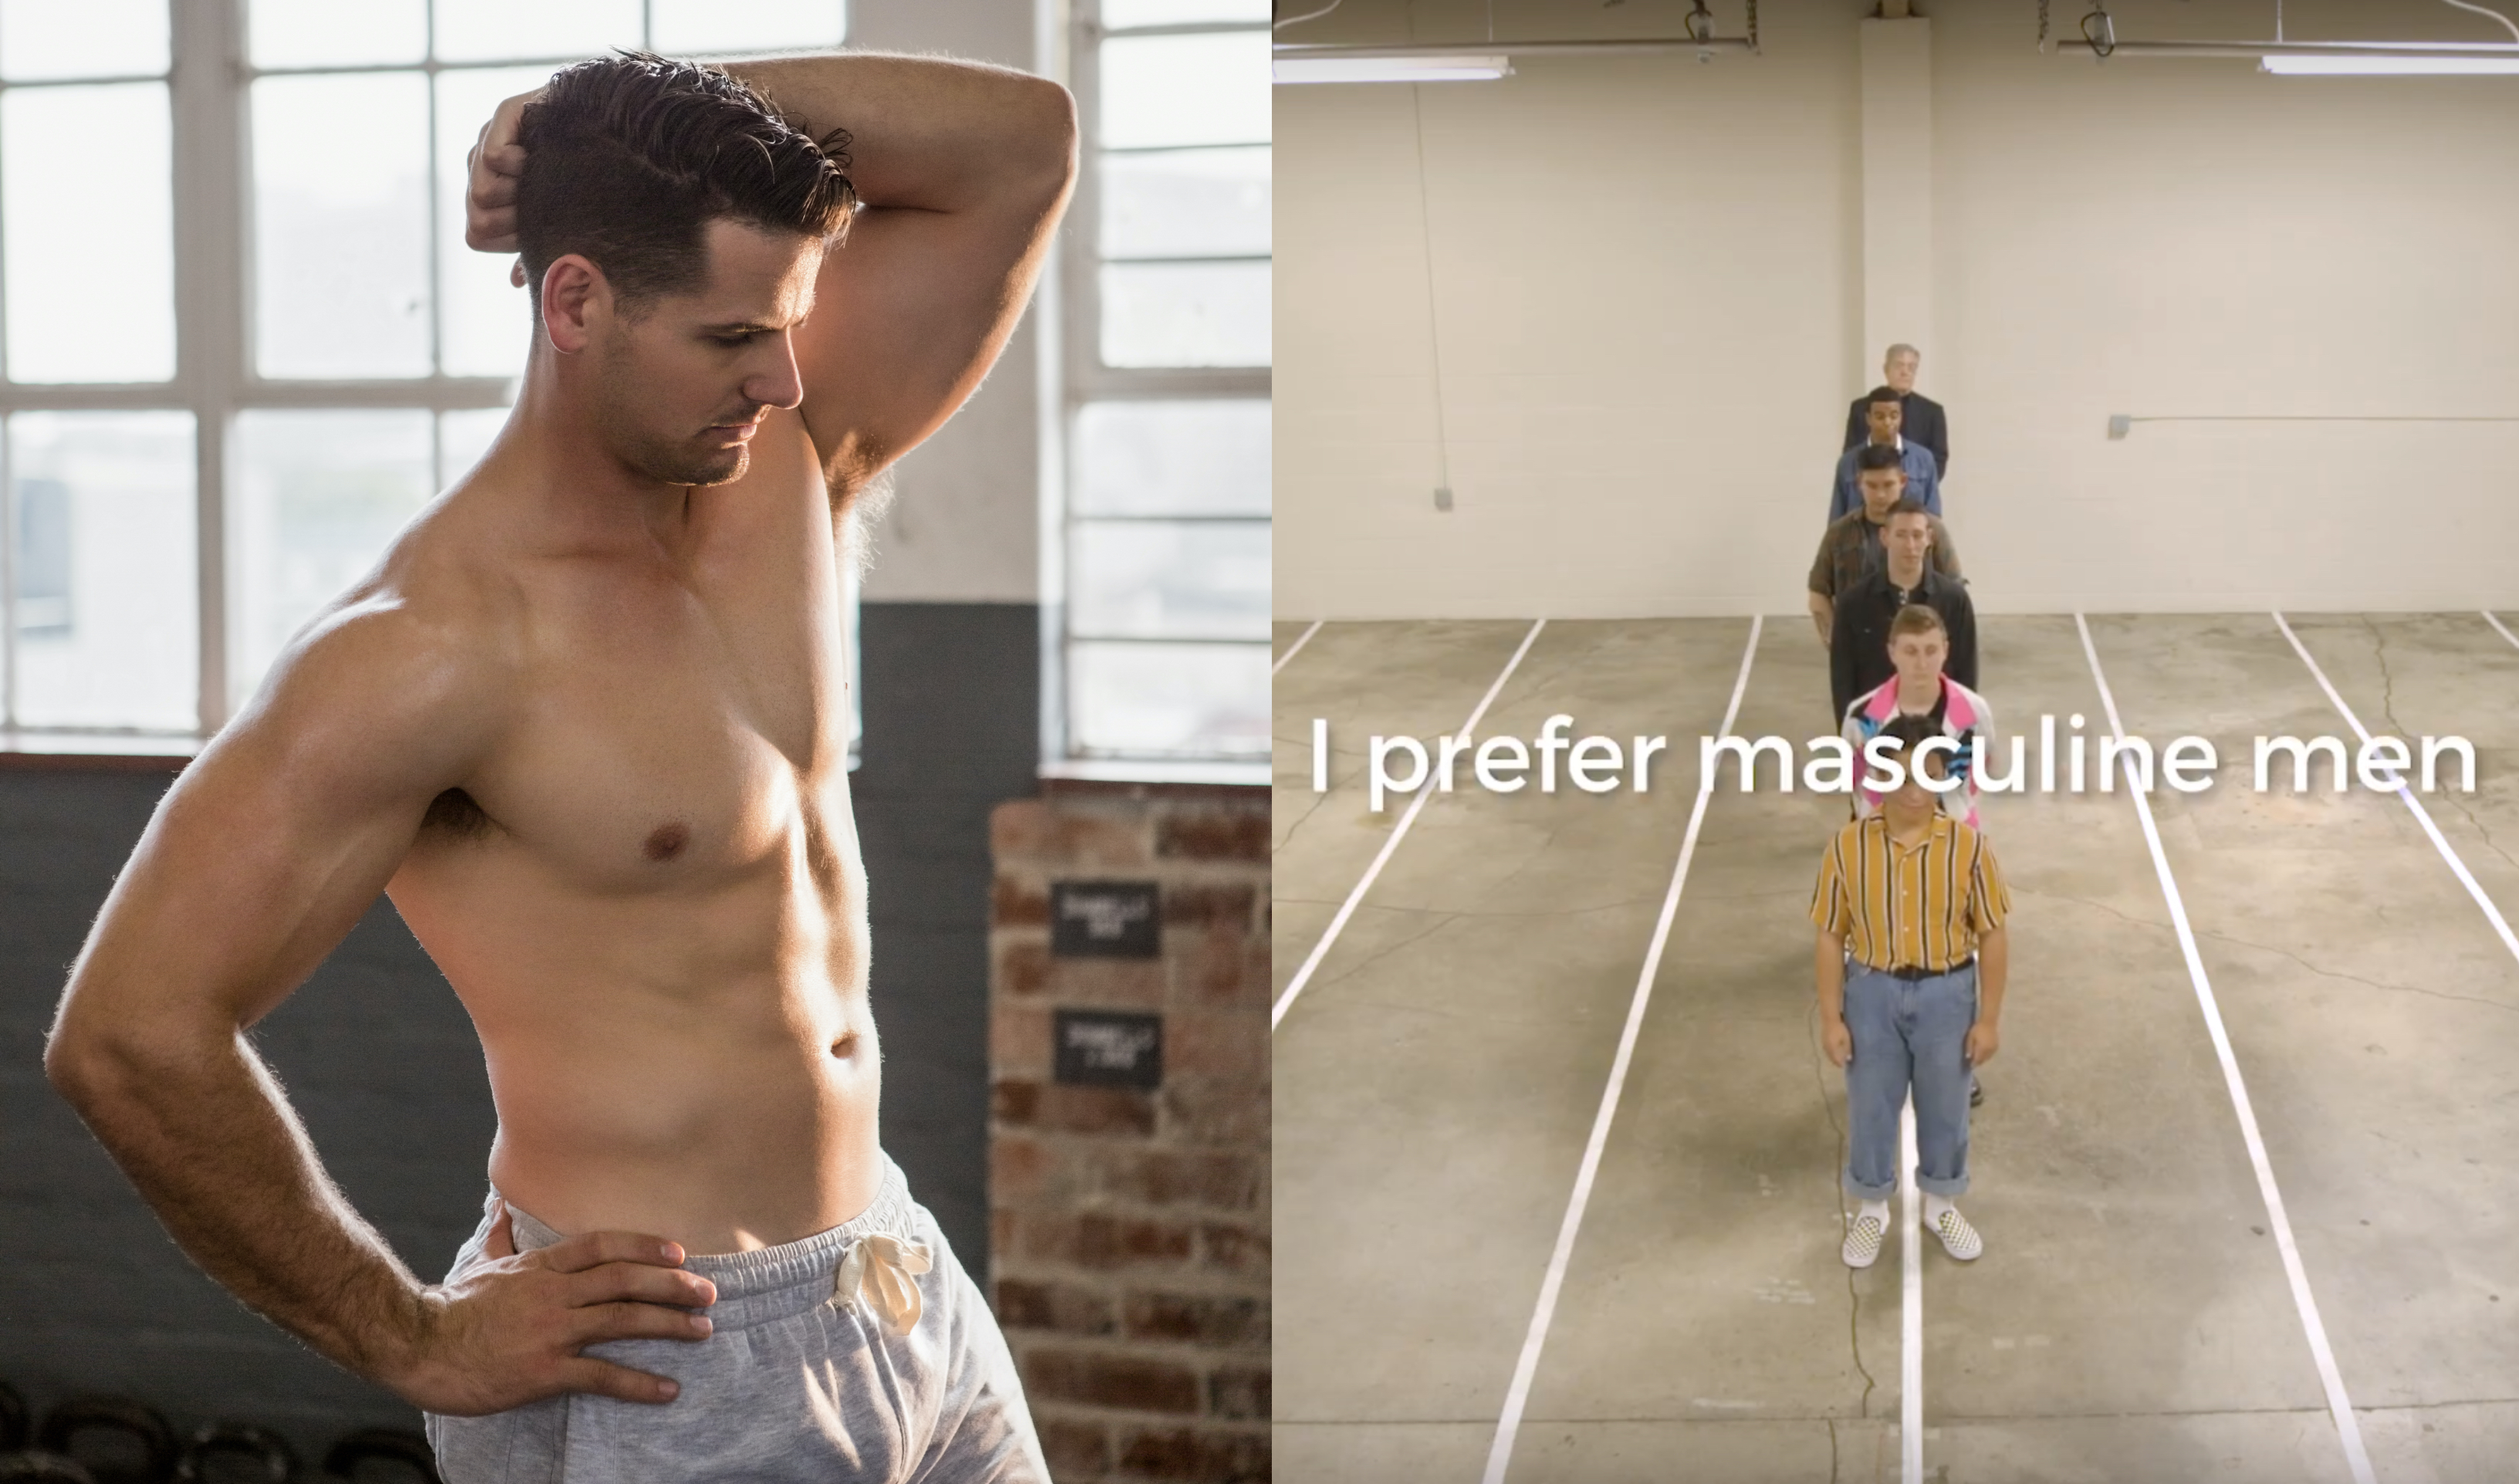 A viral video exploring how gay men view masculinity has divided Twitter. (Elements Envato)